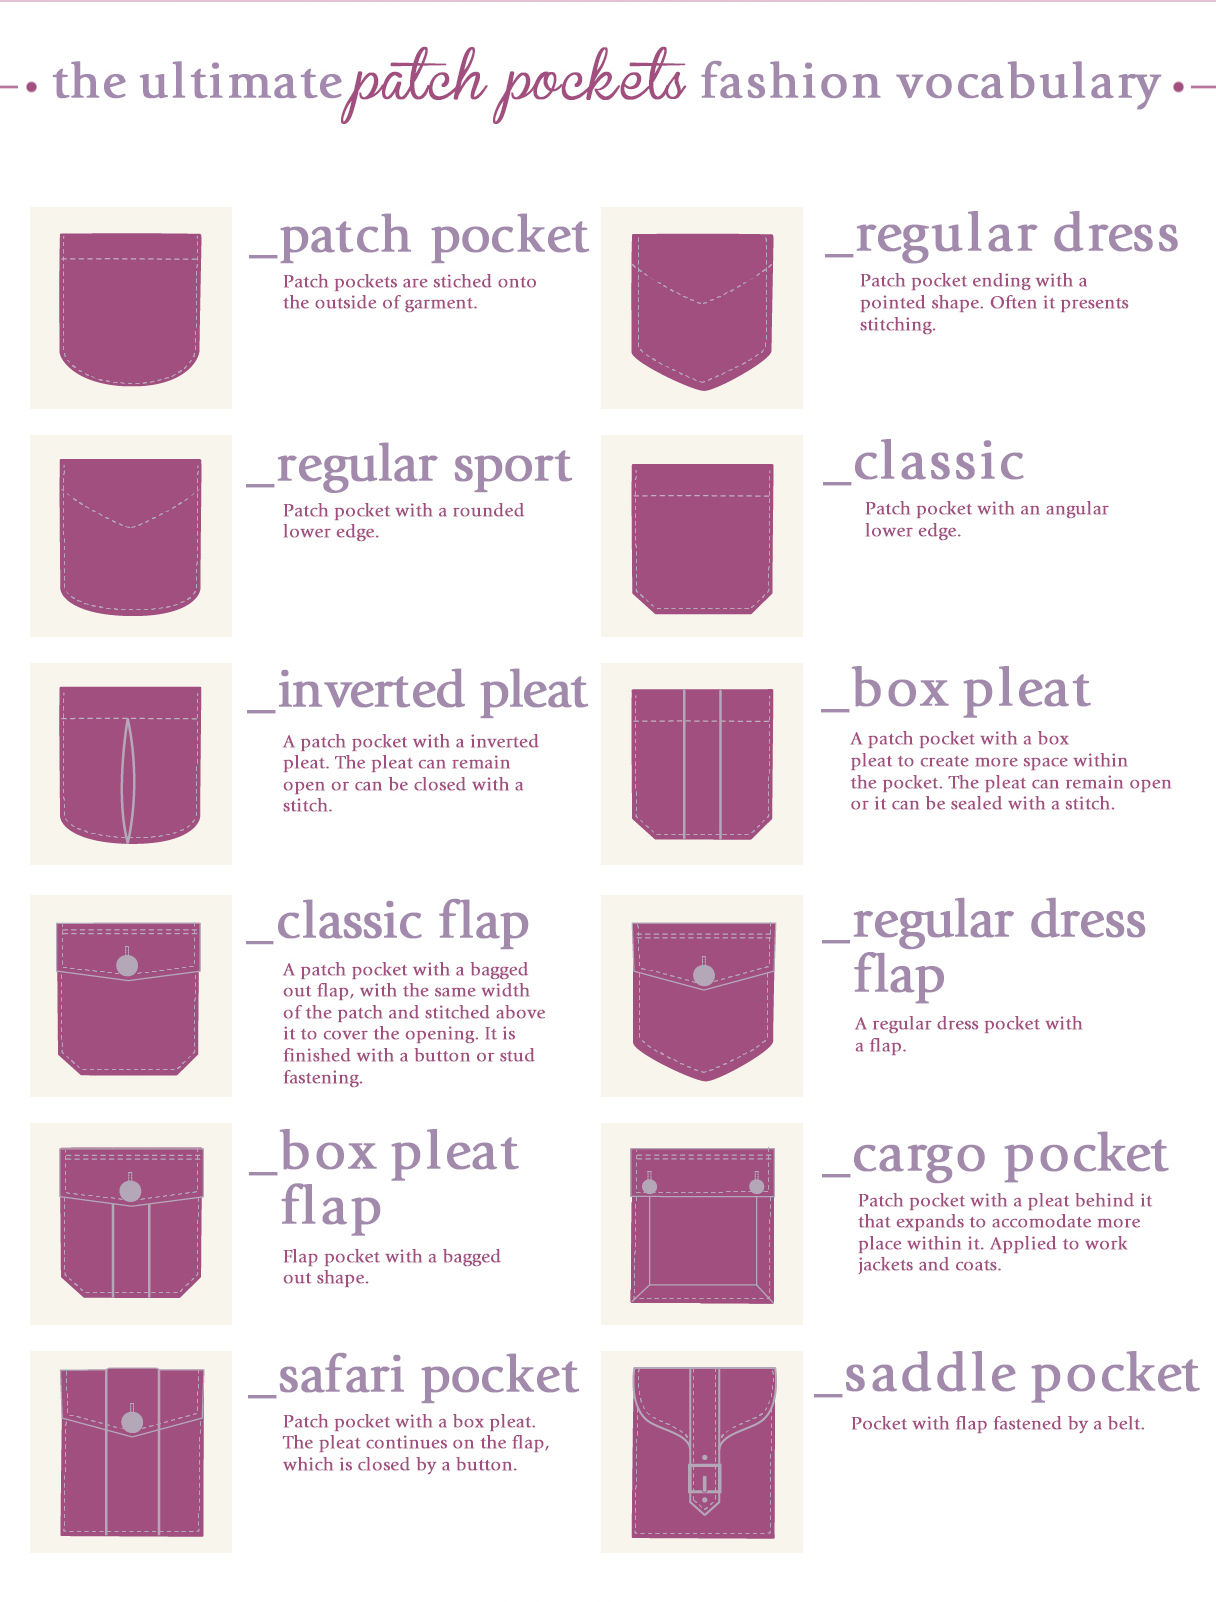 The ultimate patch pockets fashion vocabulary